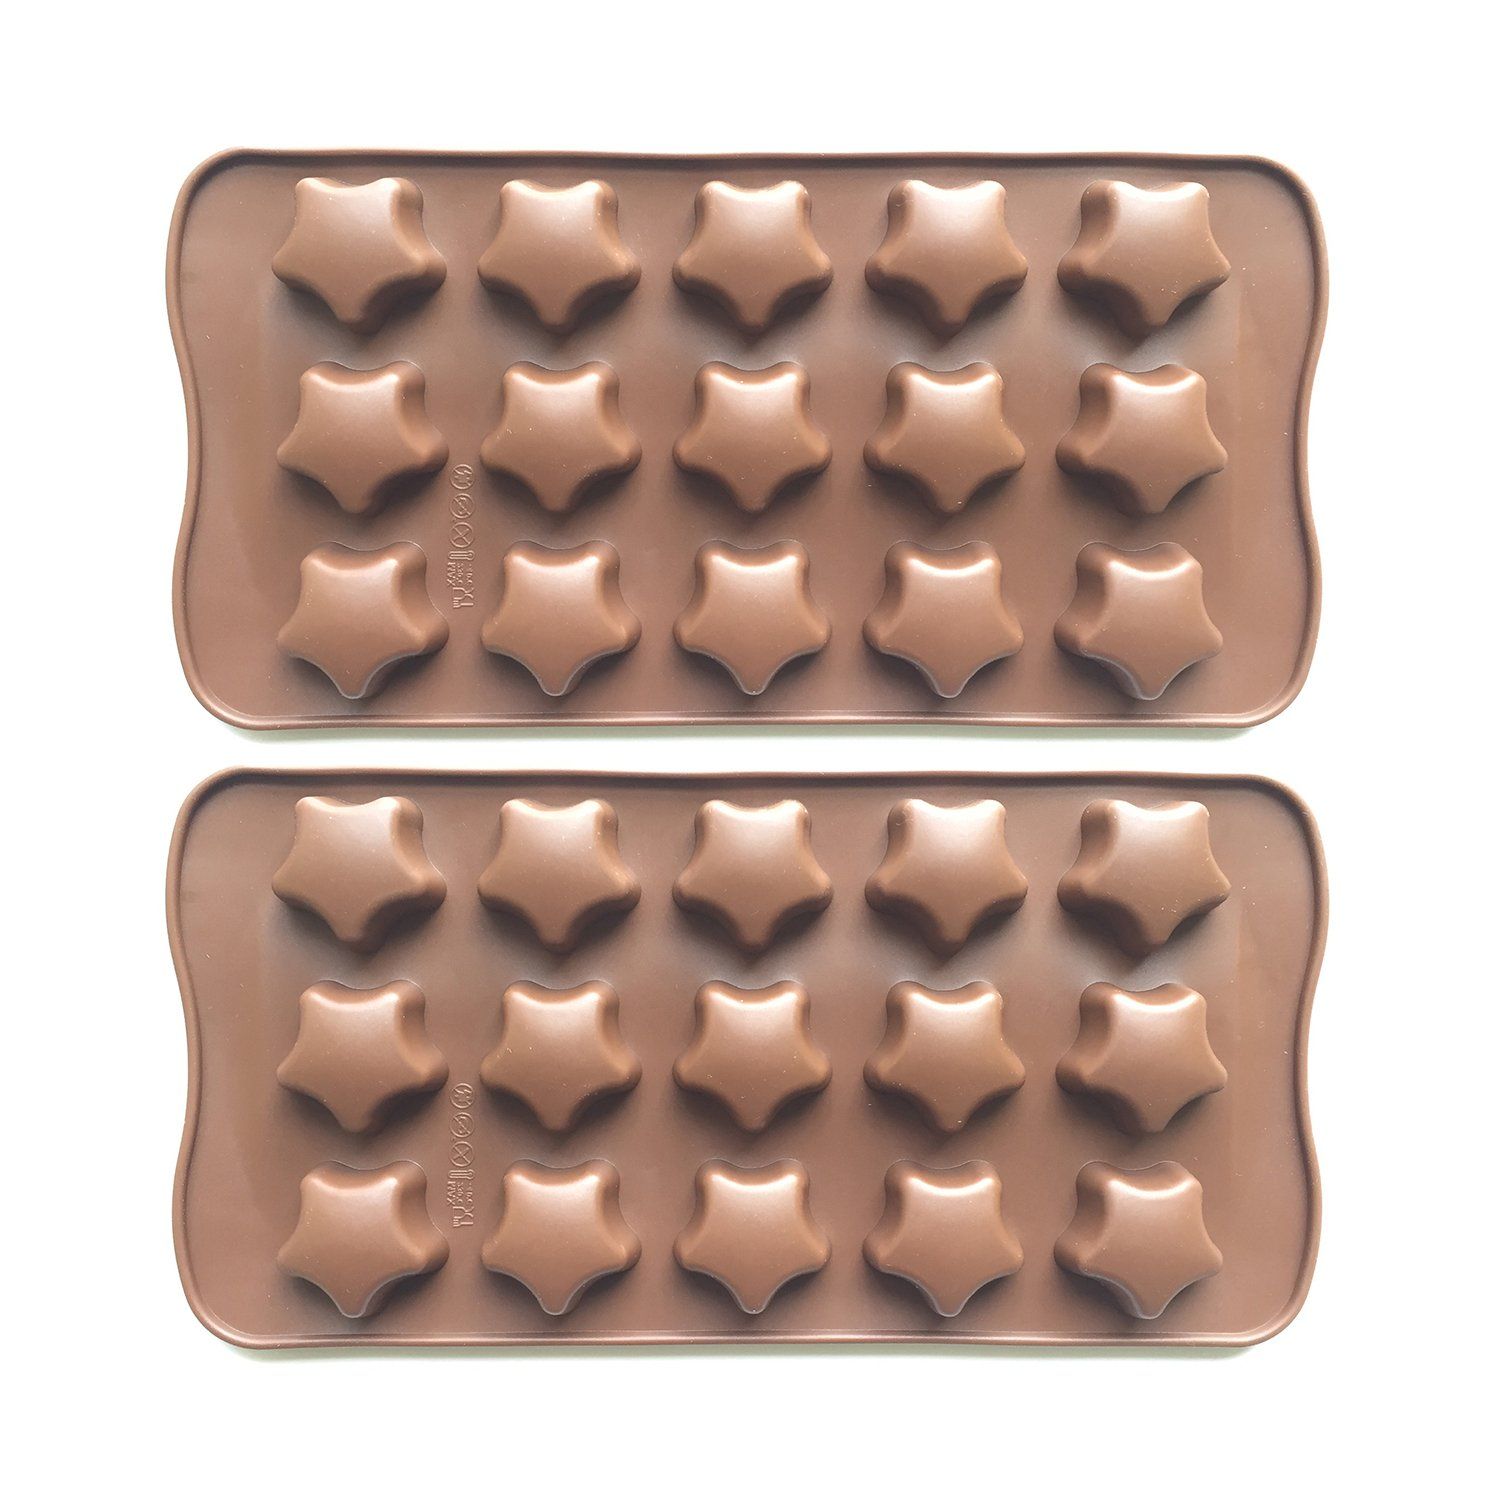 2pcs Silicone Stars Chocolate Molds for Baking/Candy/Cookies, Star Shaped Ice Cube Mold